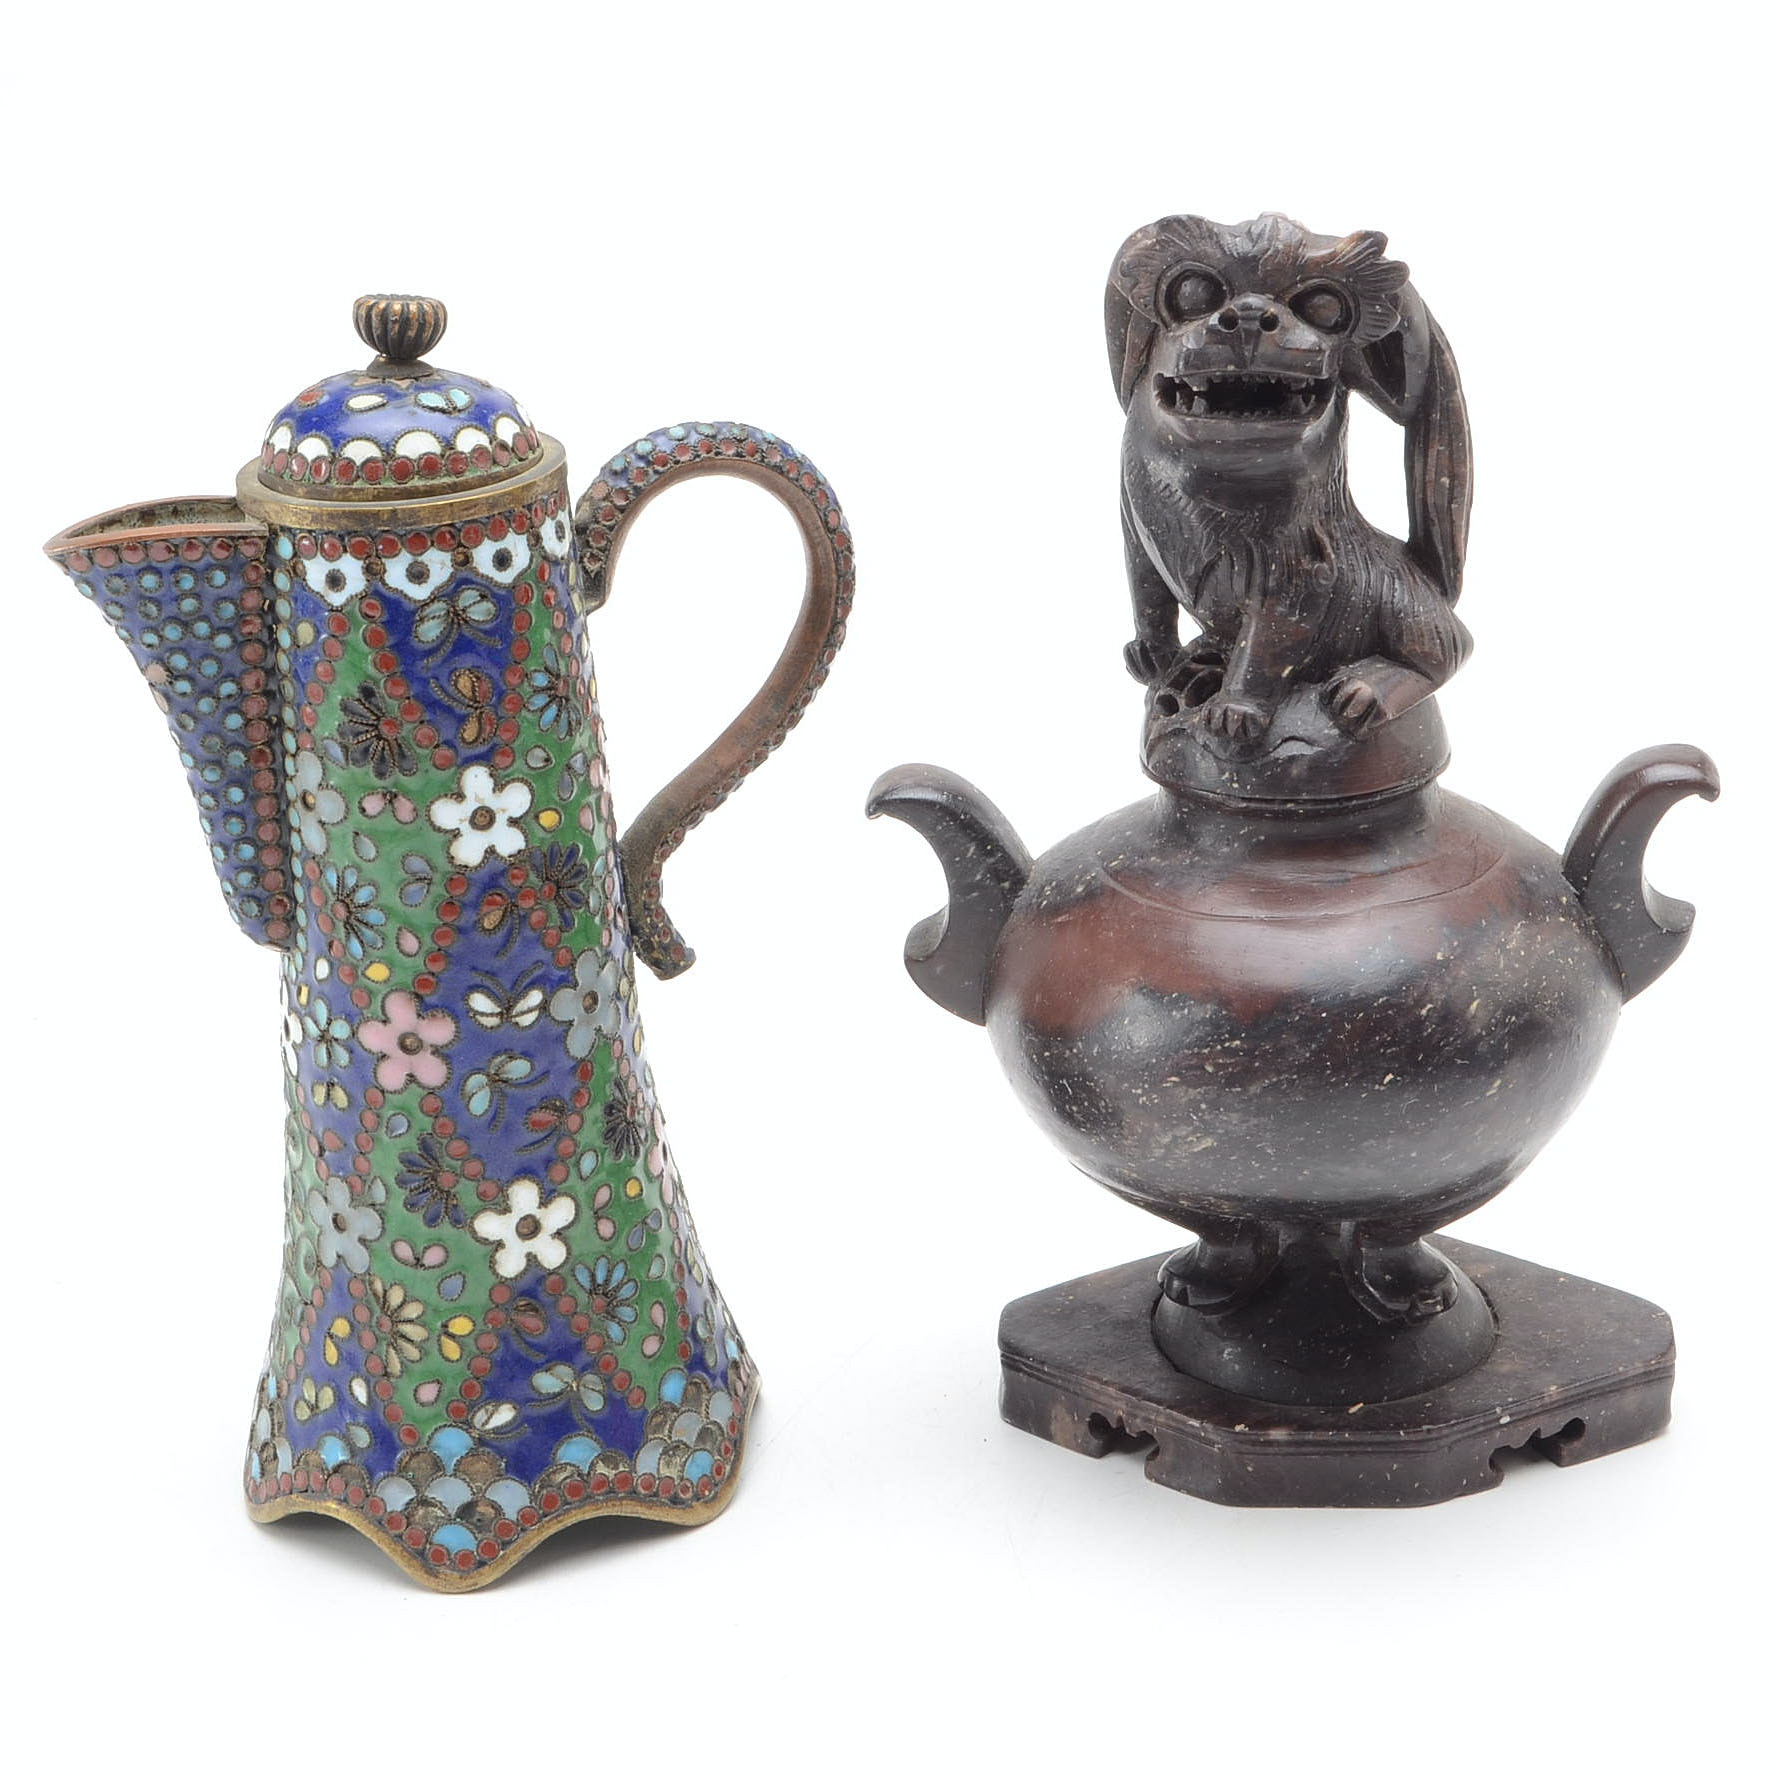 Chinese Soapstone Urn and Cloisonne Ewer